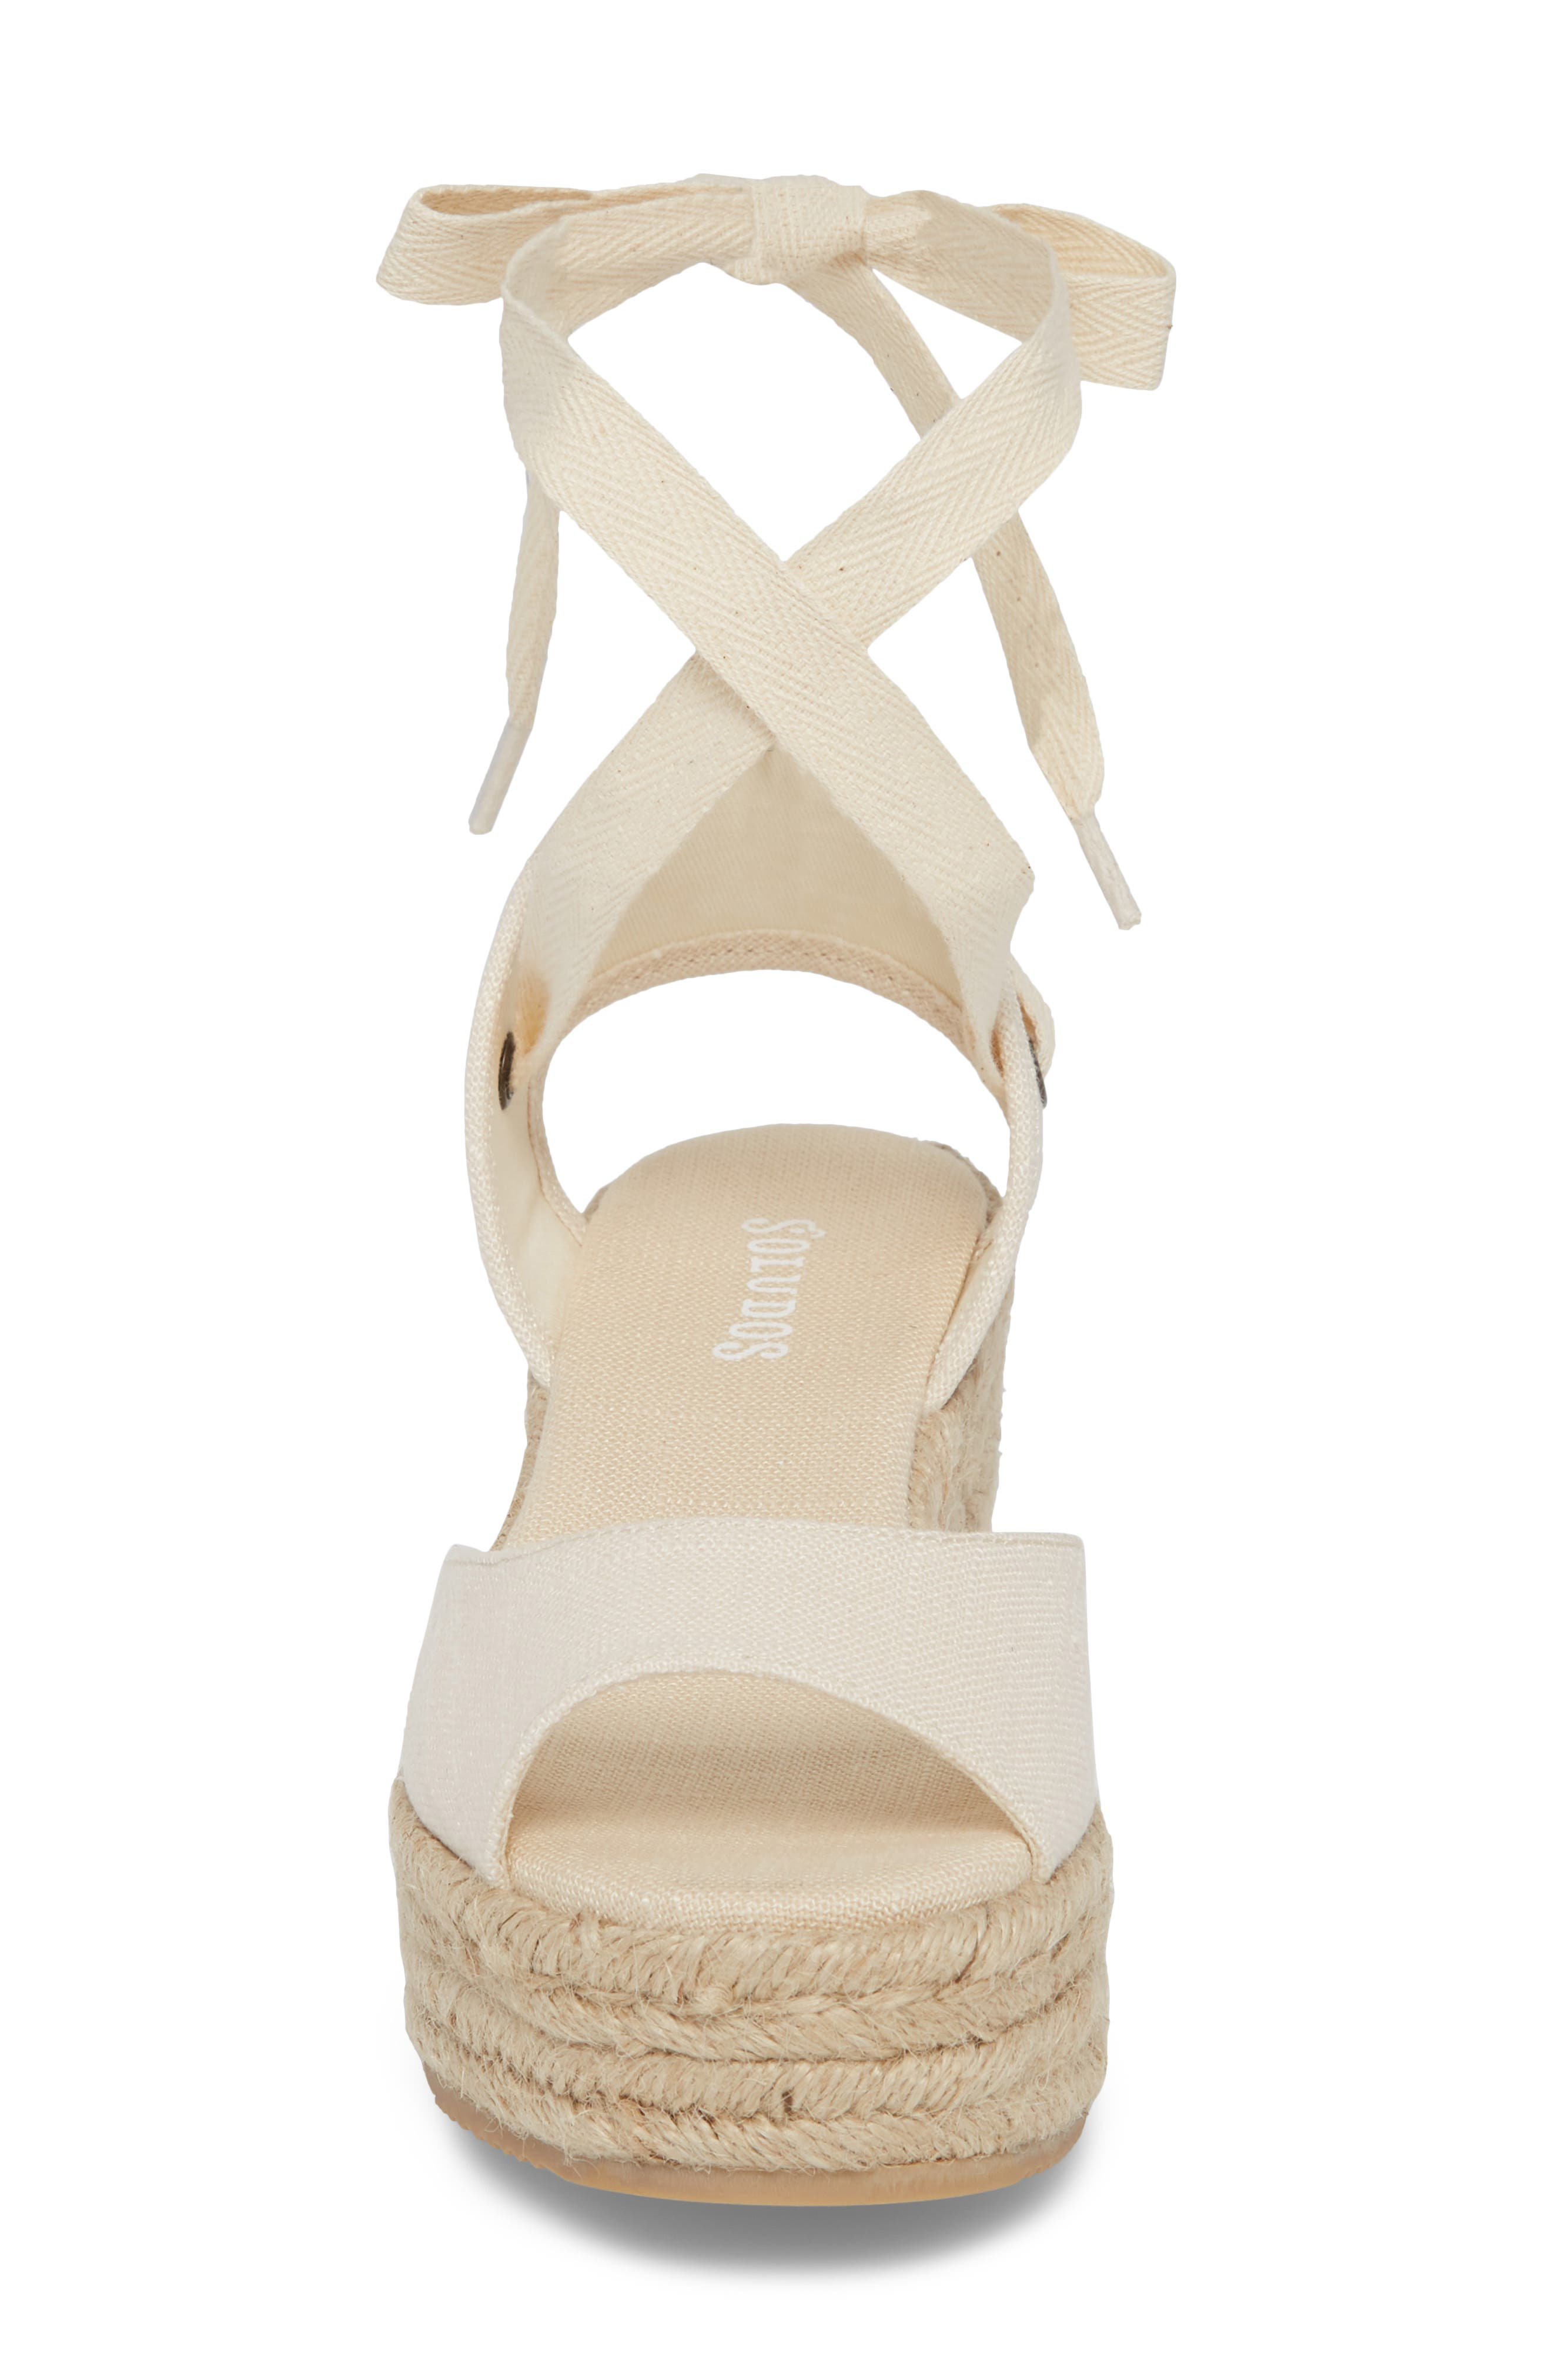 Espadrille Platform Sandal,                             Alternate thumbnail 4, color,                             BLUSH FABRIC